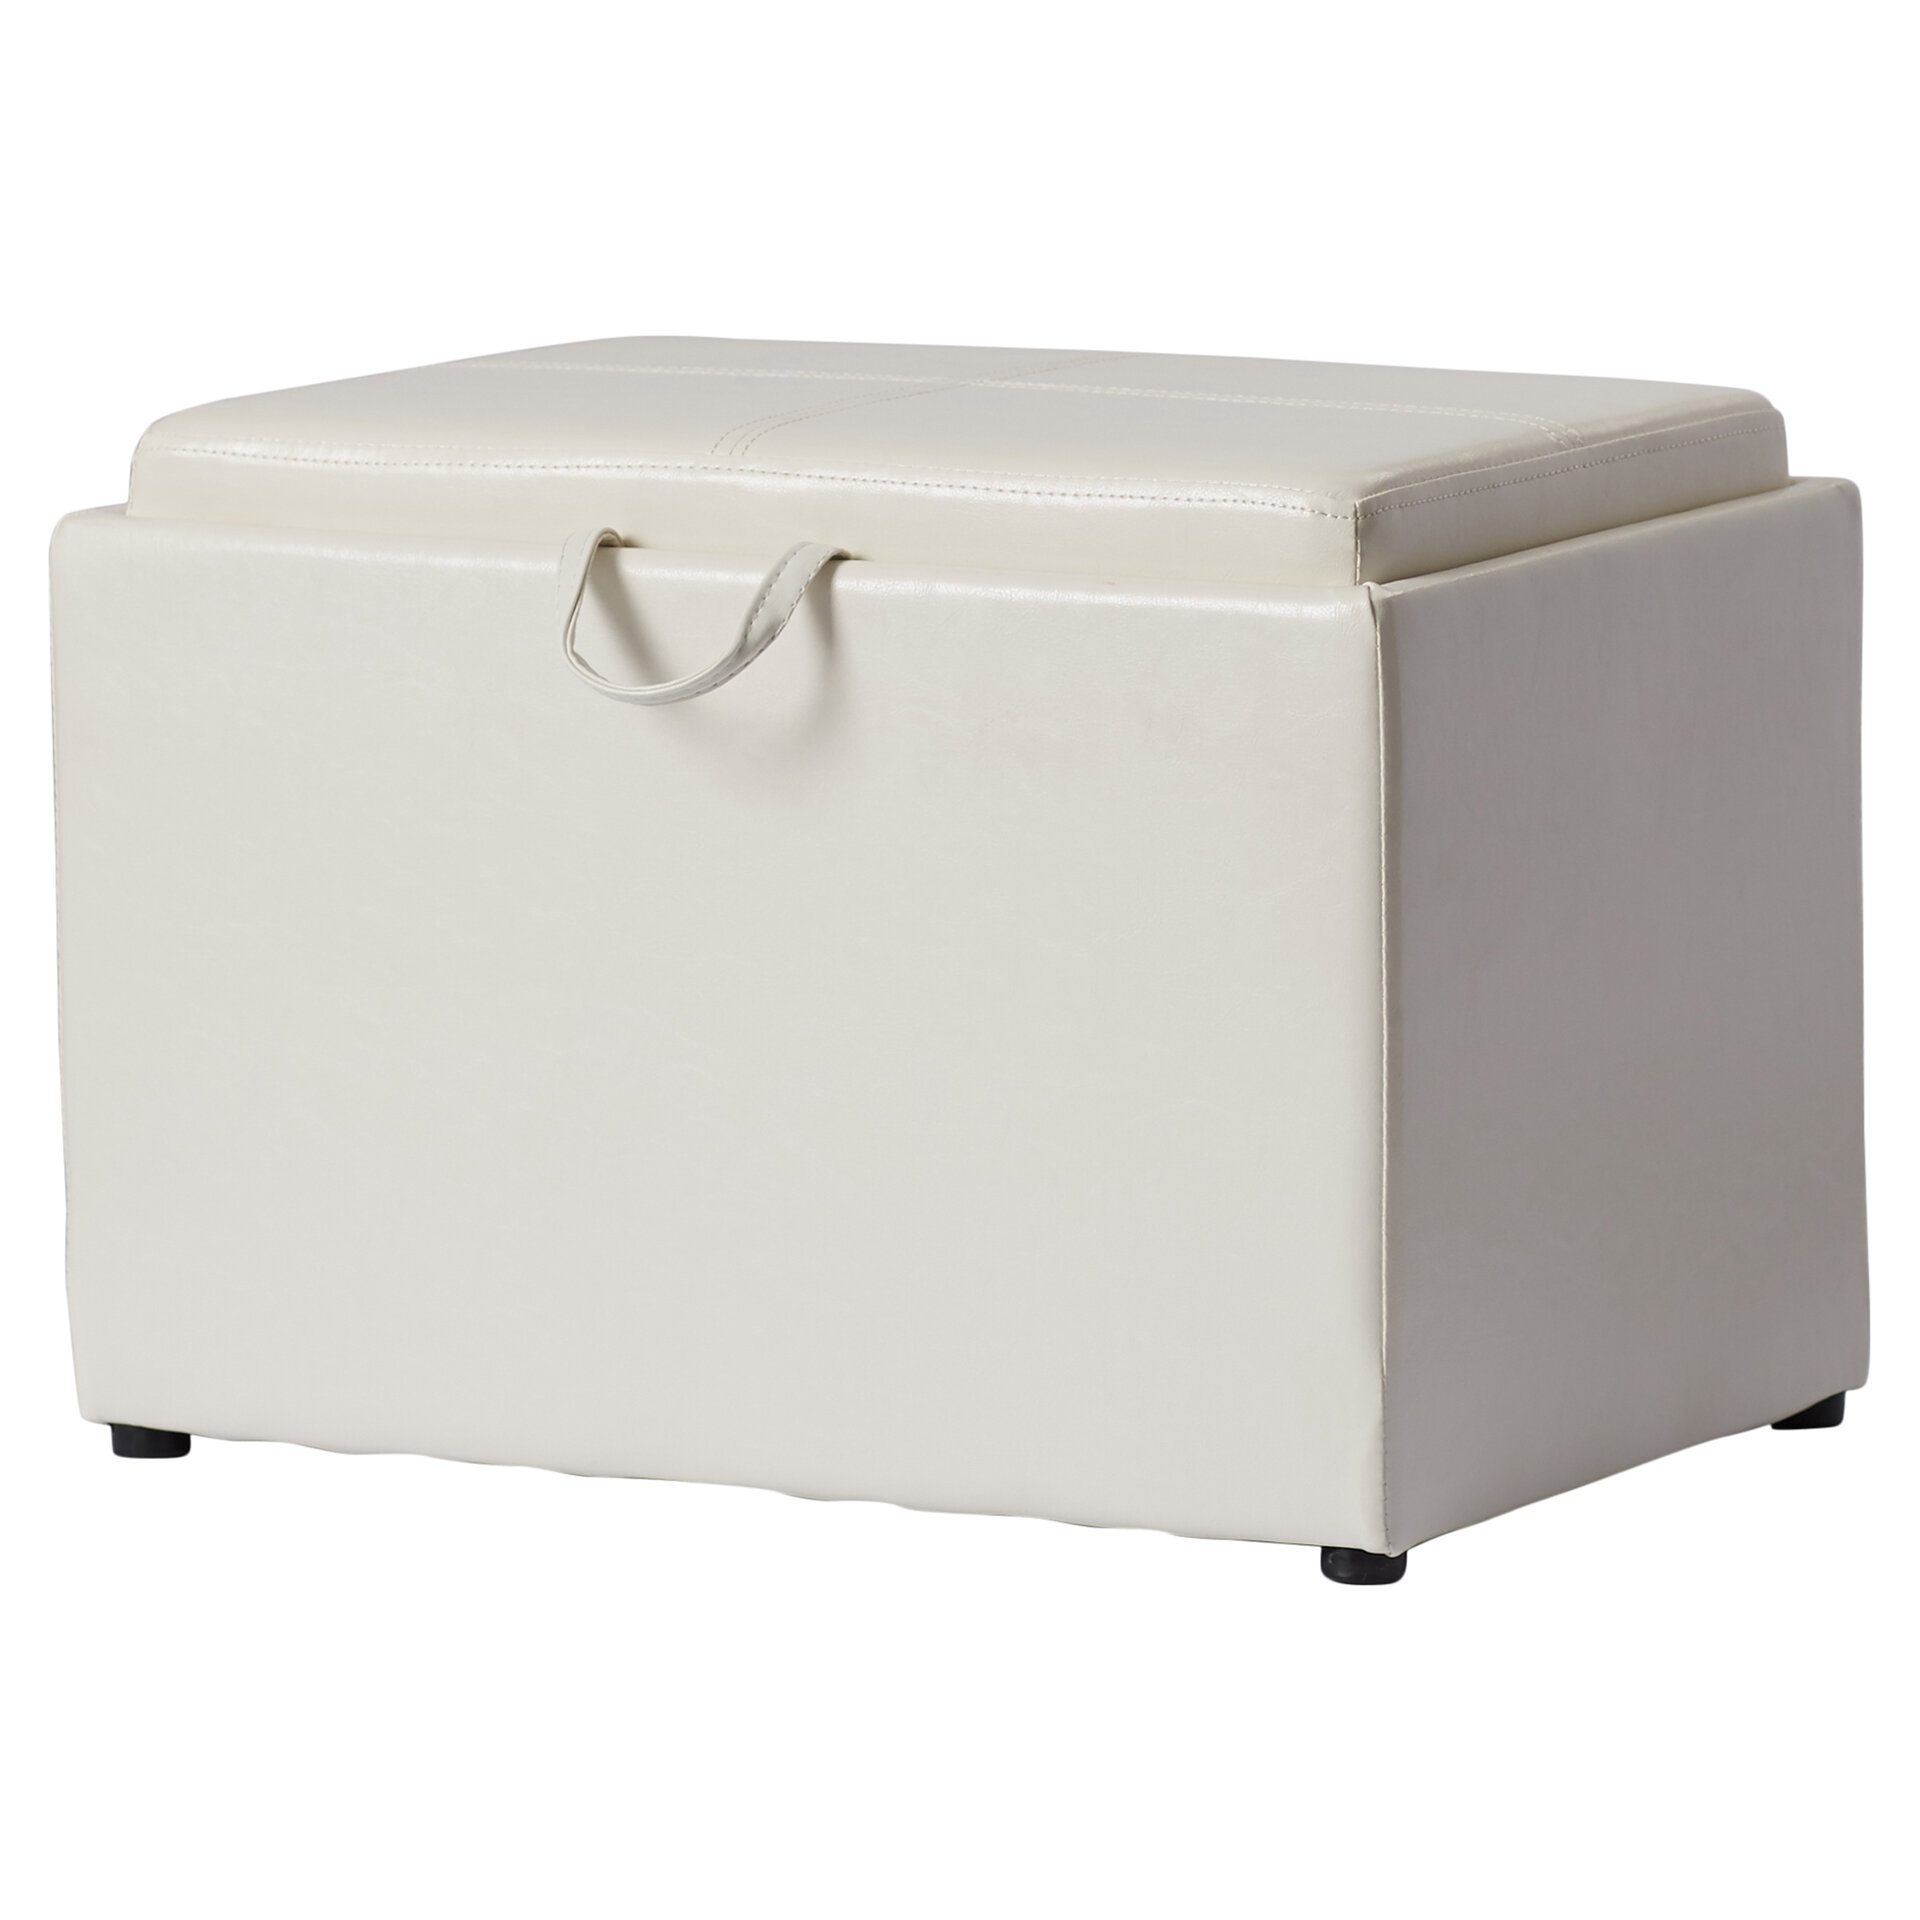 Awe Inspiring Hodnett Storage Ottoman Pabps2019 Chair Design Images Pabps2019Com